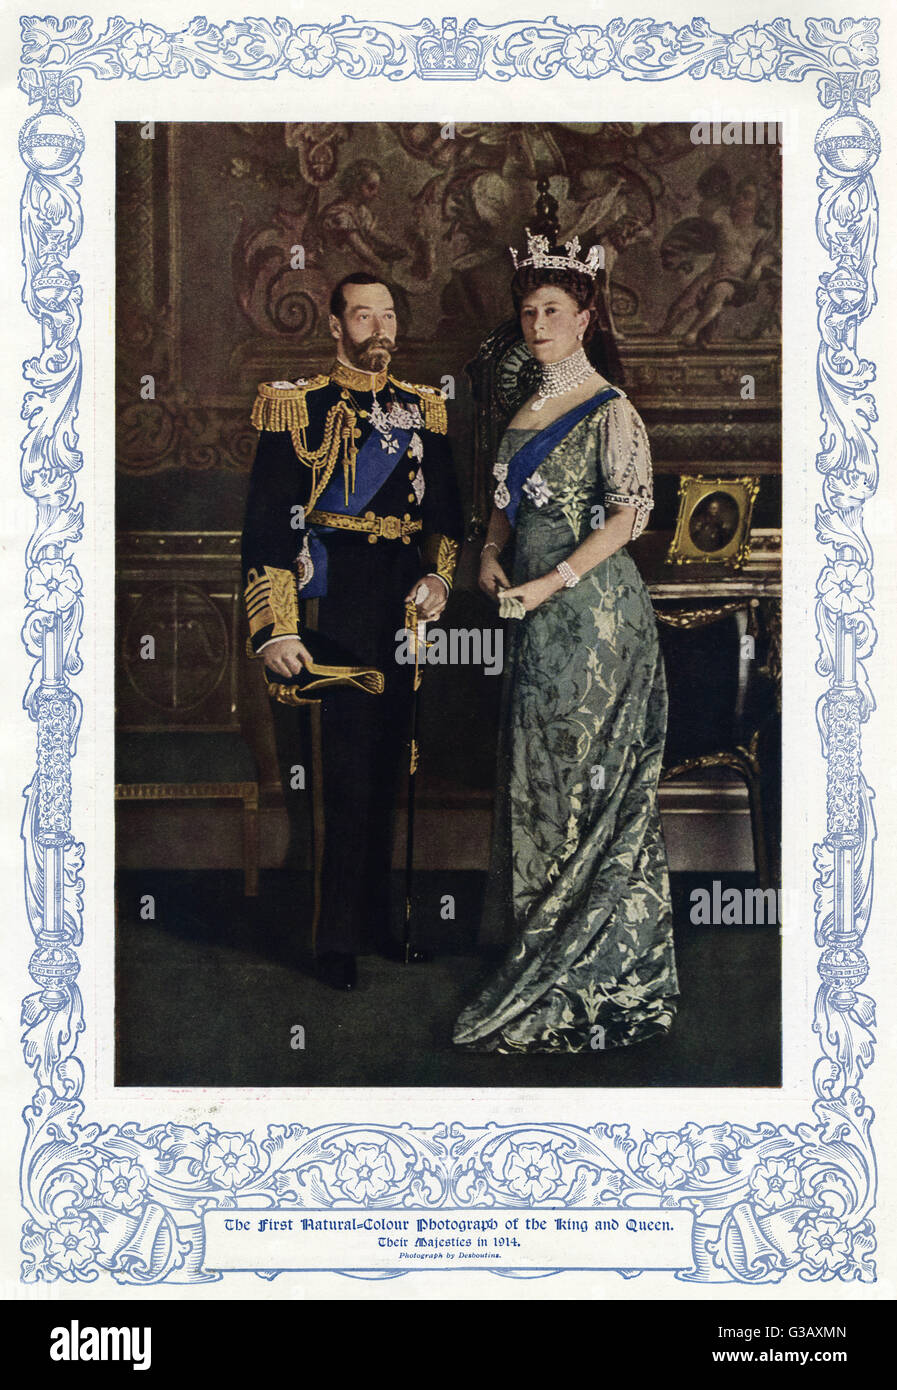 King George V (1865 - 1936) and his wife Queen Mary consort at Buckingham Palace.  Queen Mary wear a wearing a crown - Stock Image